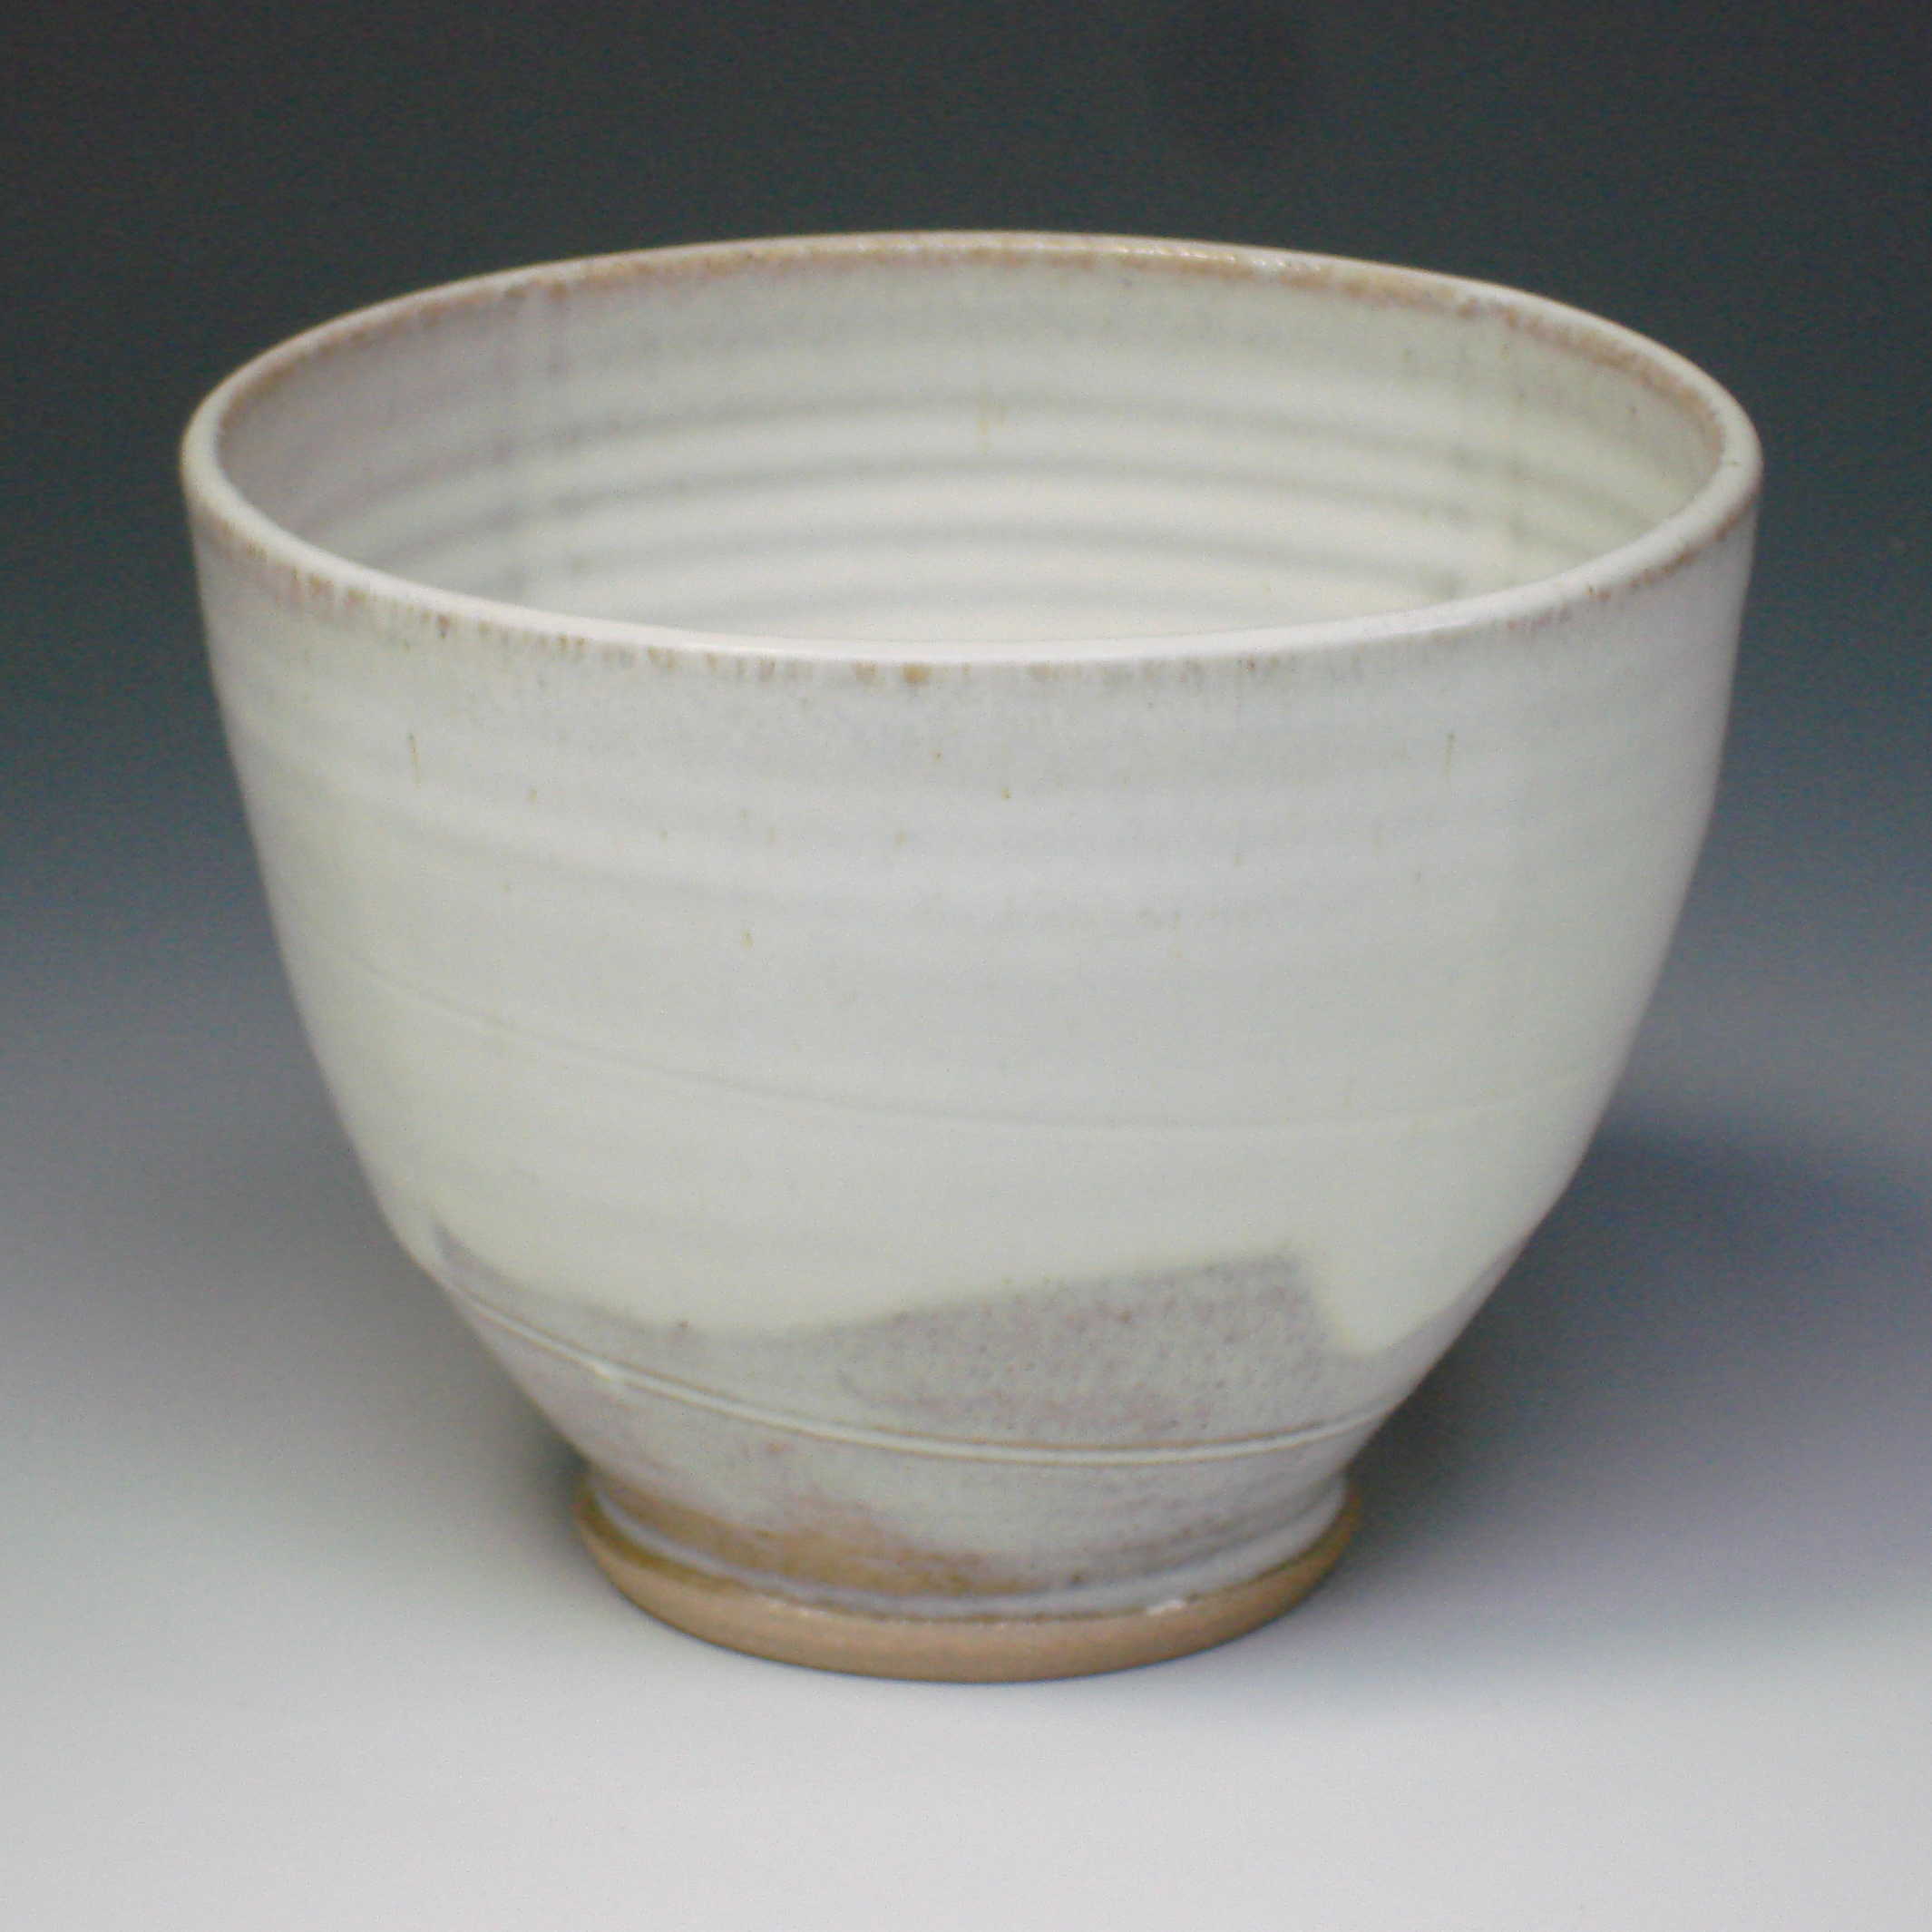 Squareware bowl winter white